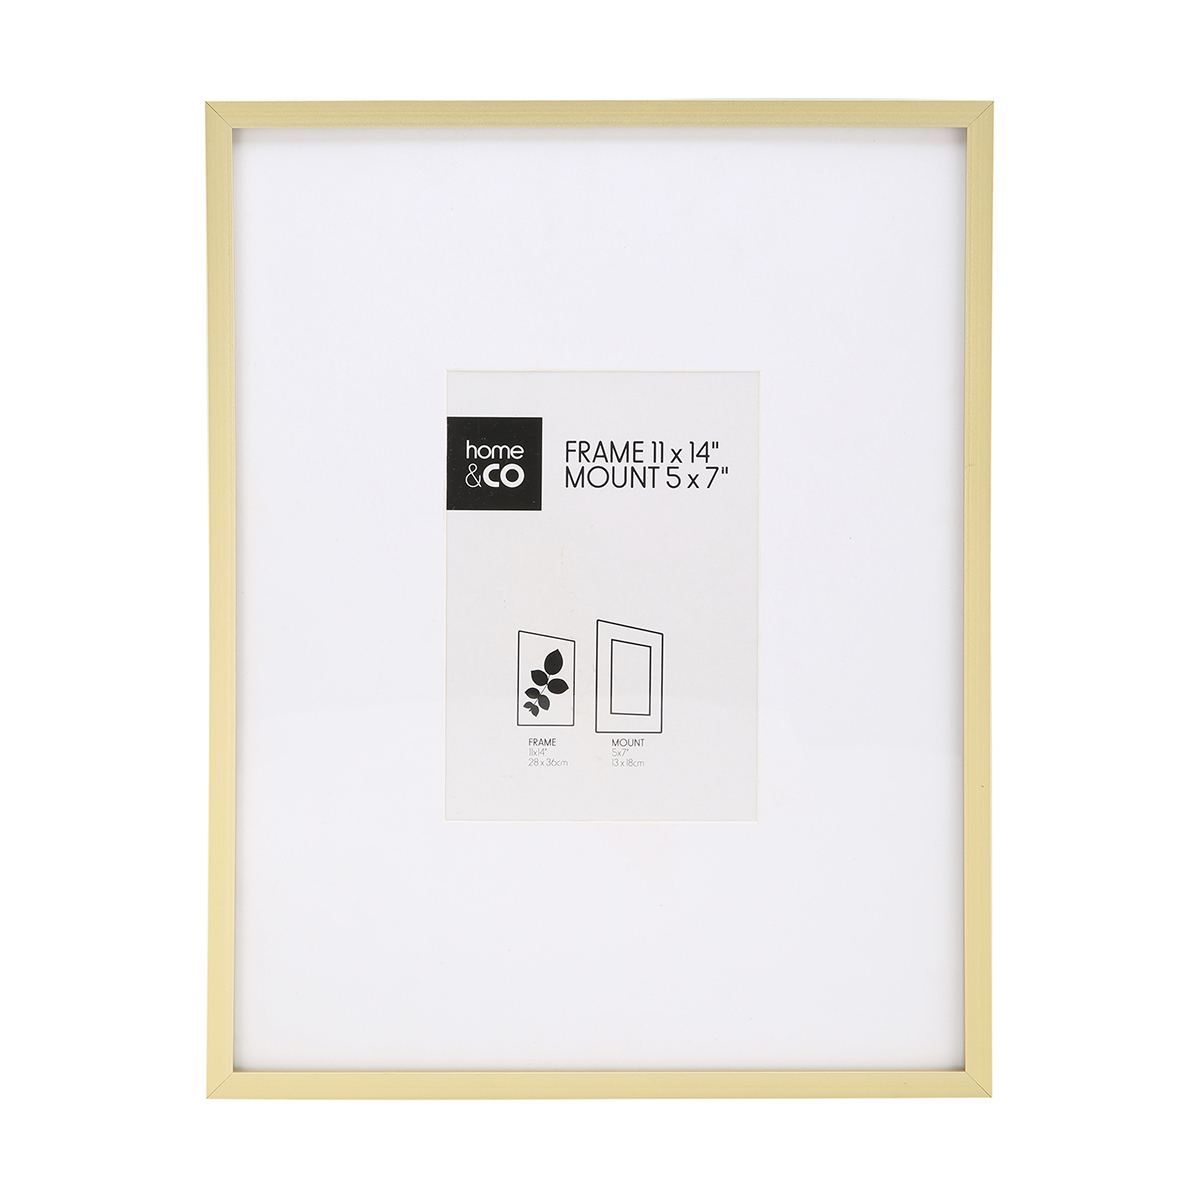 Kmart Digital Photo Frame Kmart Photo Frames Australia Frame Design And Reviews